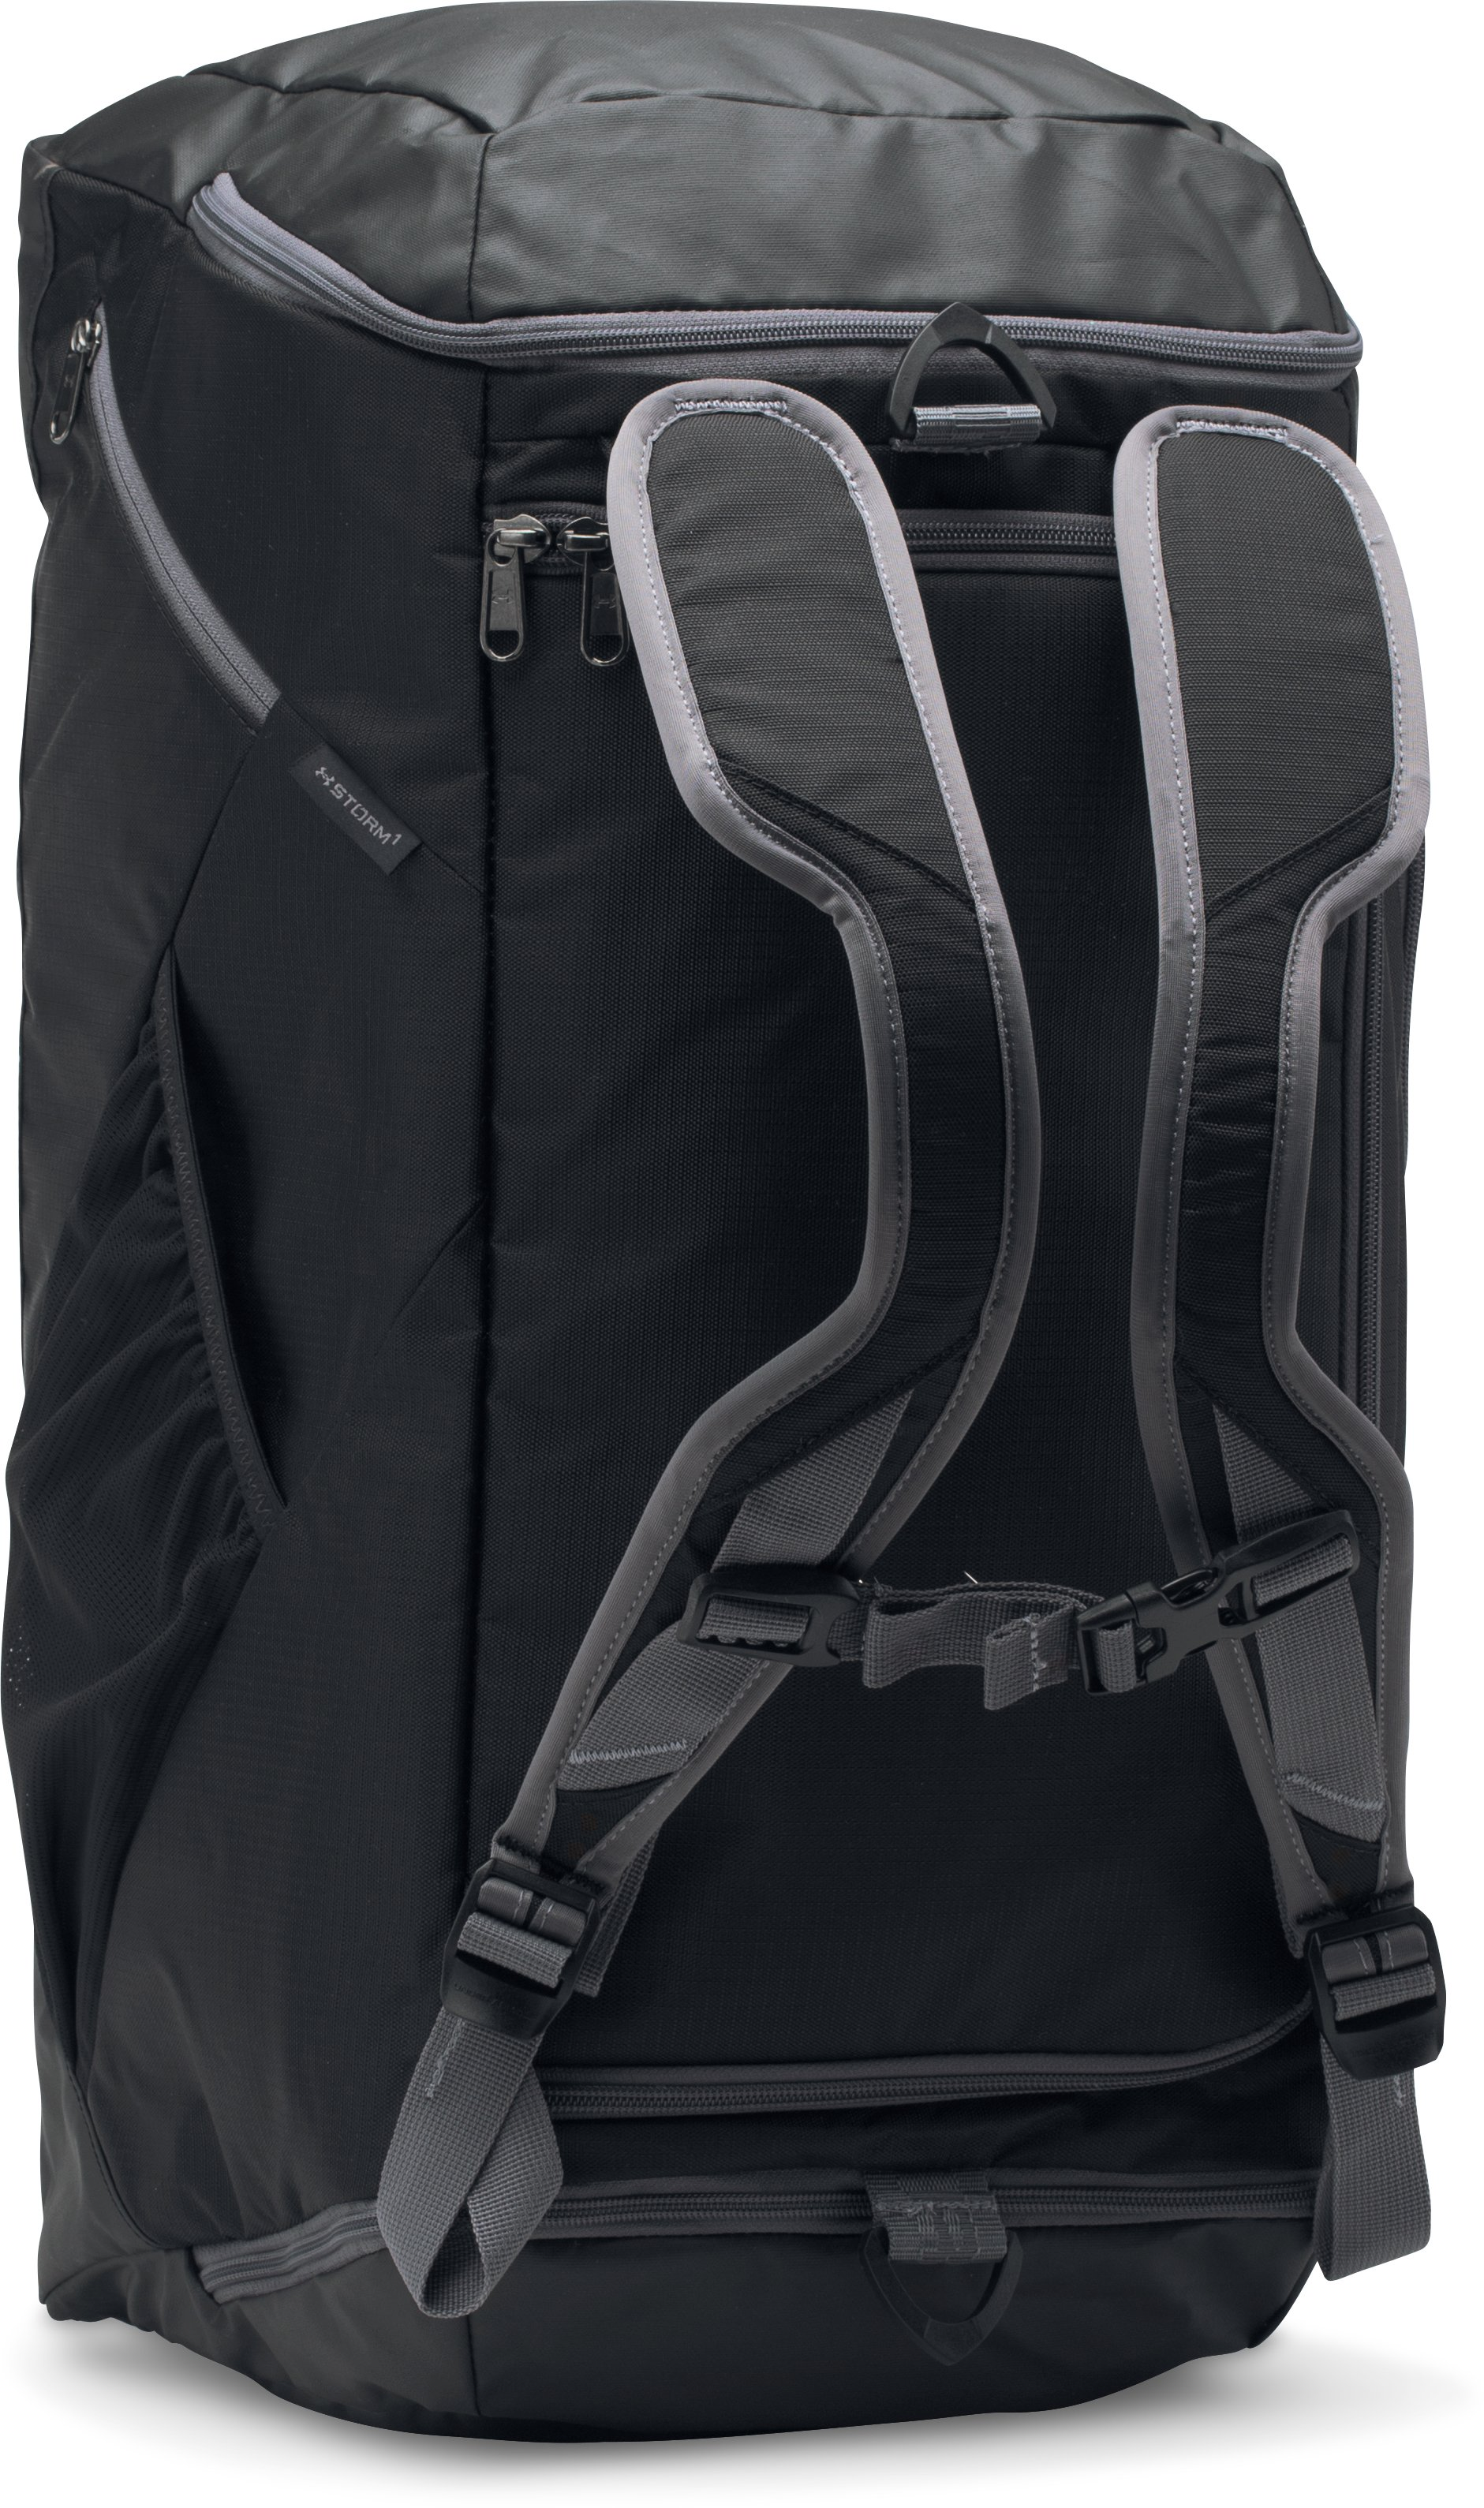 UA Storm Contain Backpack Duffle 3.0, Black